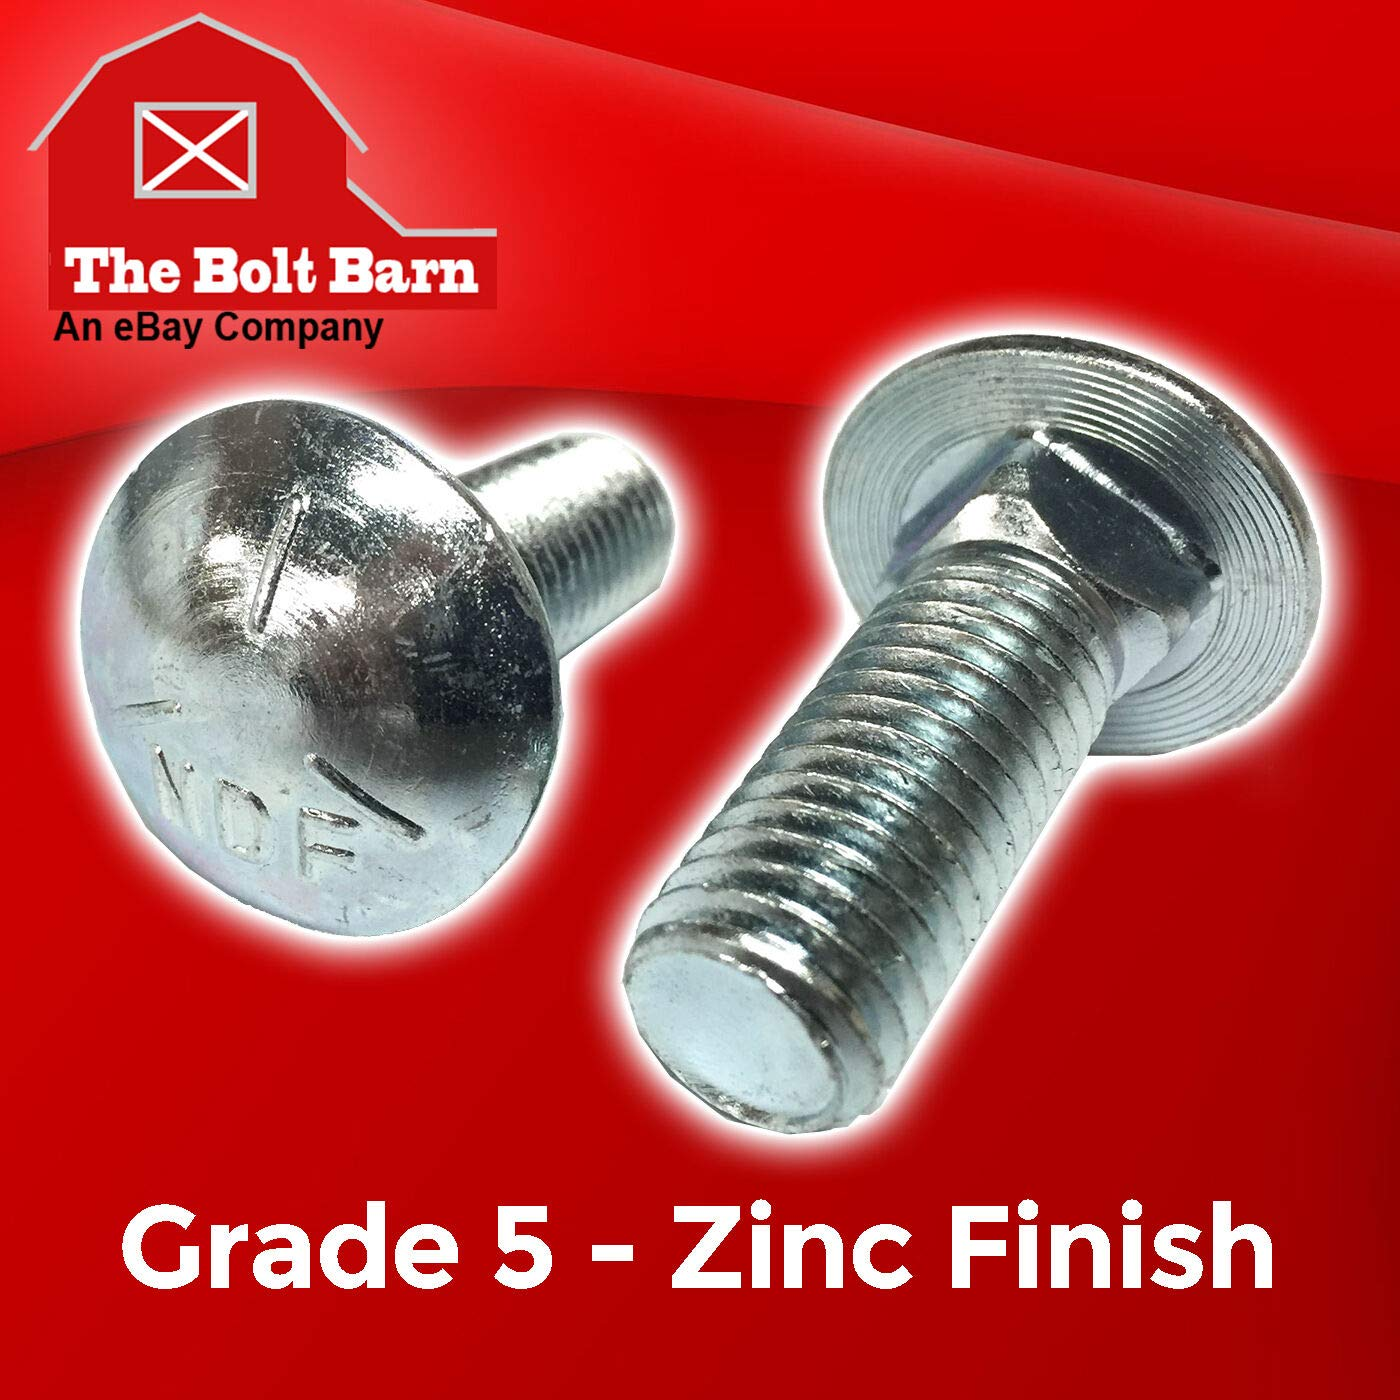 3//8-16x4 Grade 5 Carriage Bolts Round Head Square Neck Bolts Zinc Durable and Sturdy 20 Good Holding Power in Different Materials